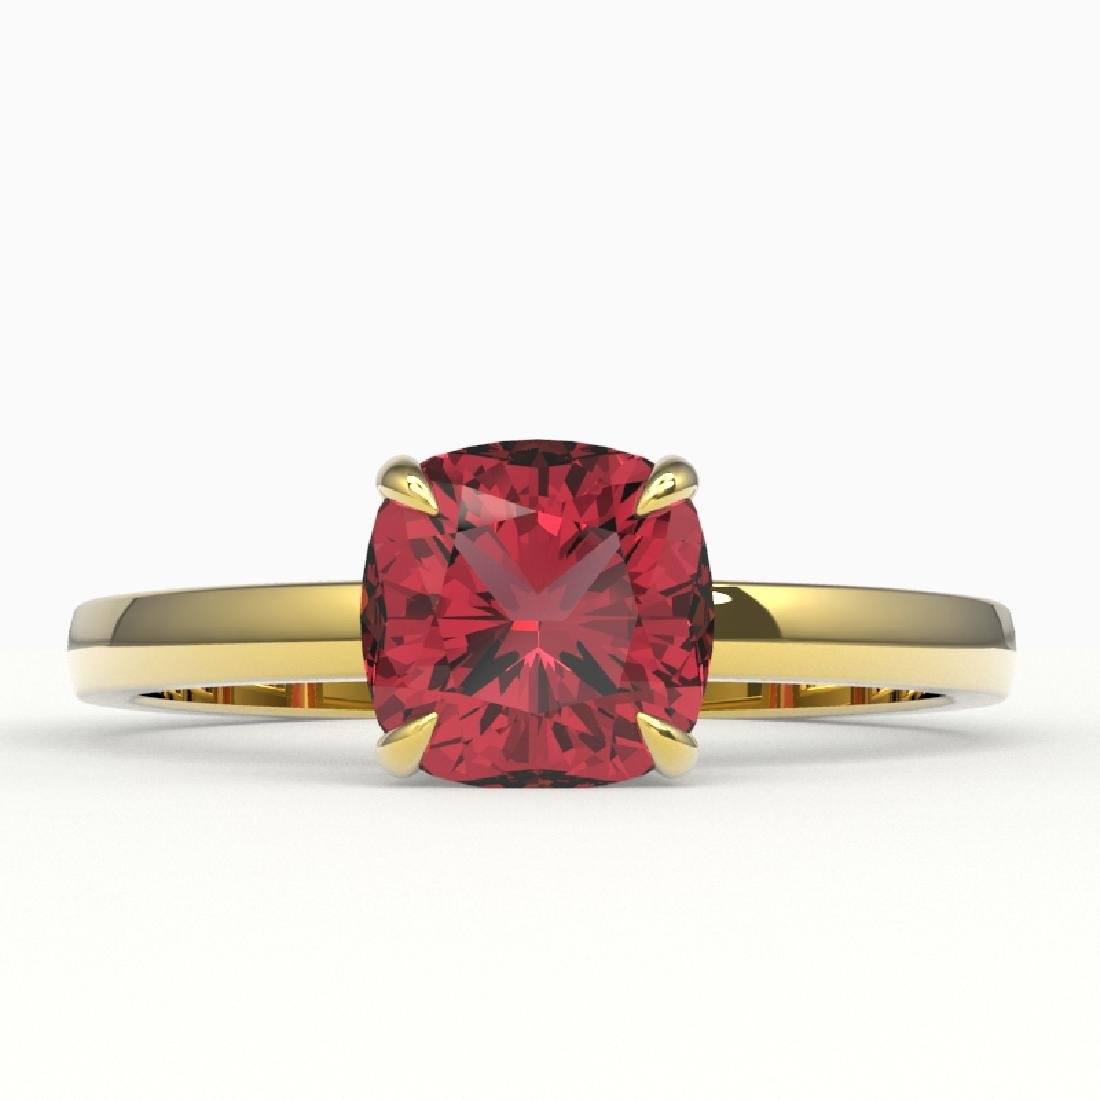 2 CTW Cushion Cut Pink Tourmaline Solitaire Engagement